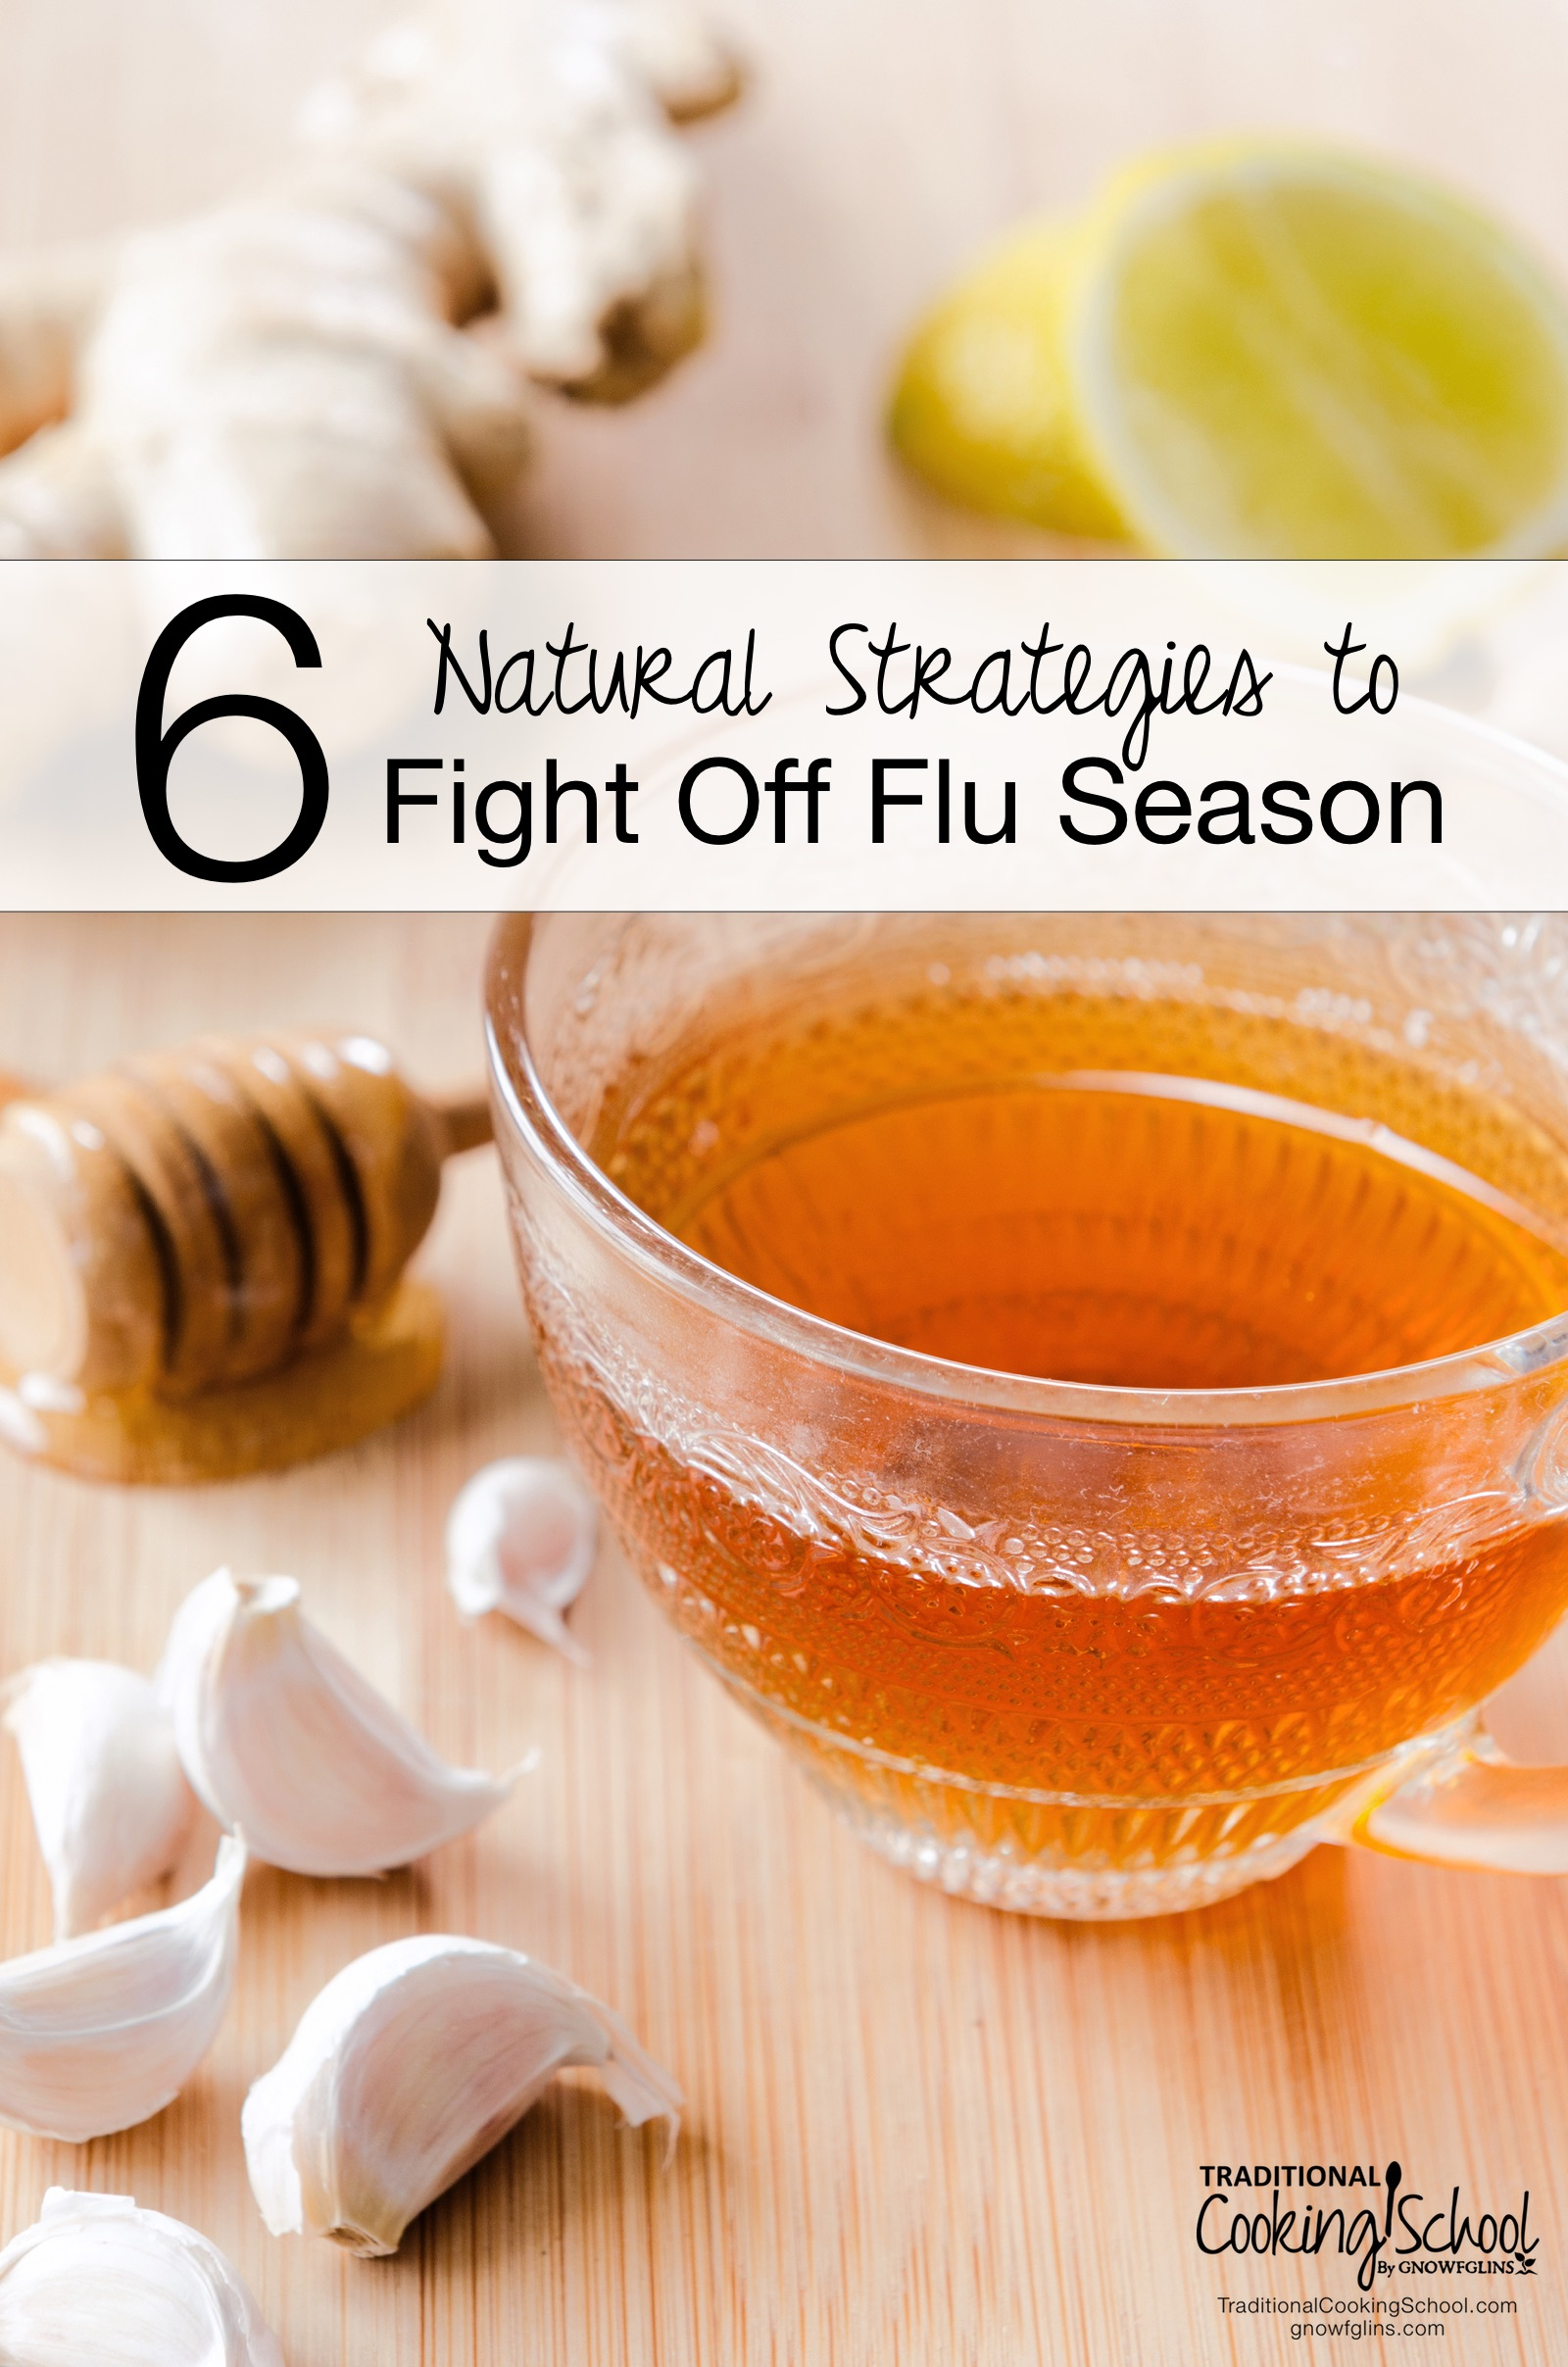 6 Natural Strategies to Fight Off Flu Season | Flu season is here again... And it will last from now through early spring. If you find yourself sick with the flu, it's important to know your enemy so you can defeat it. Here are 6 natural flu remedies and strategies you can utilize to make it through flu season this year. | TraditionalCookingSchool.com